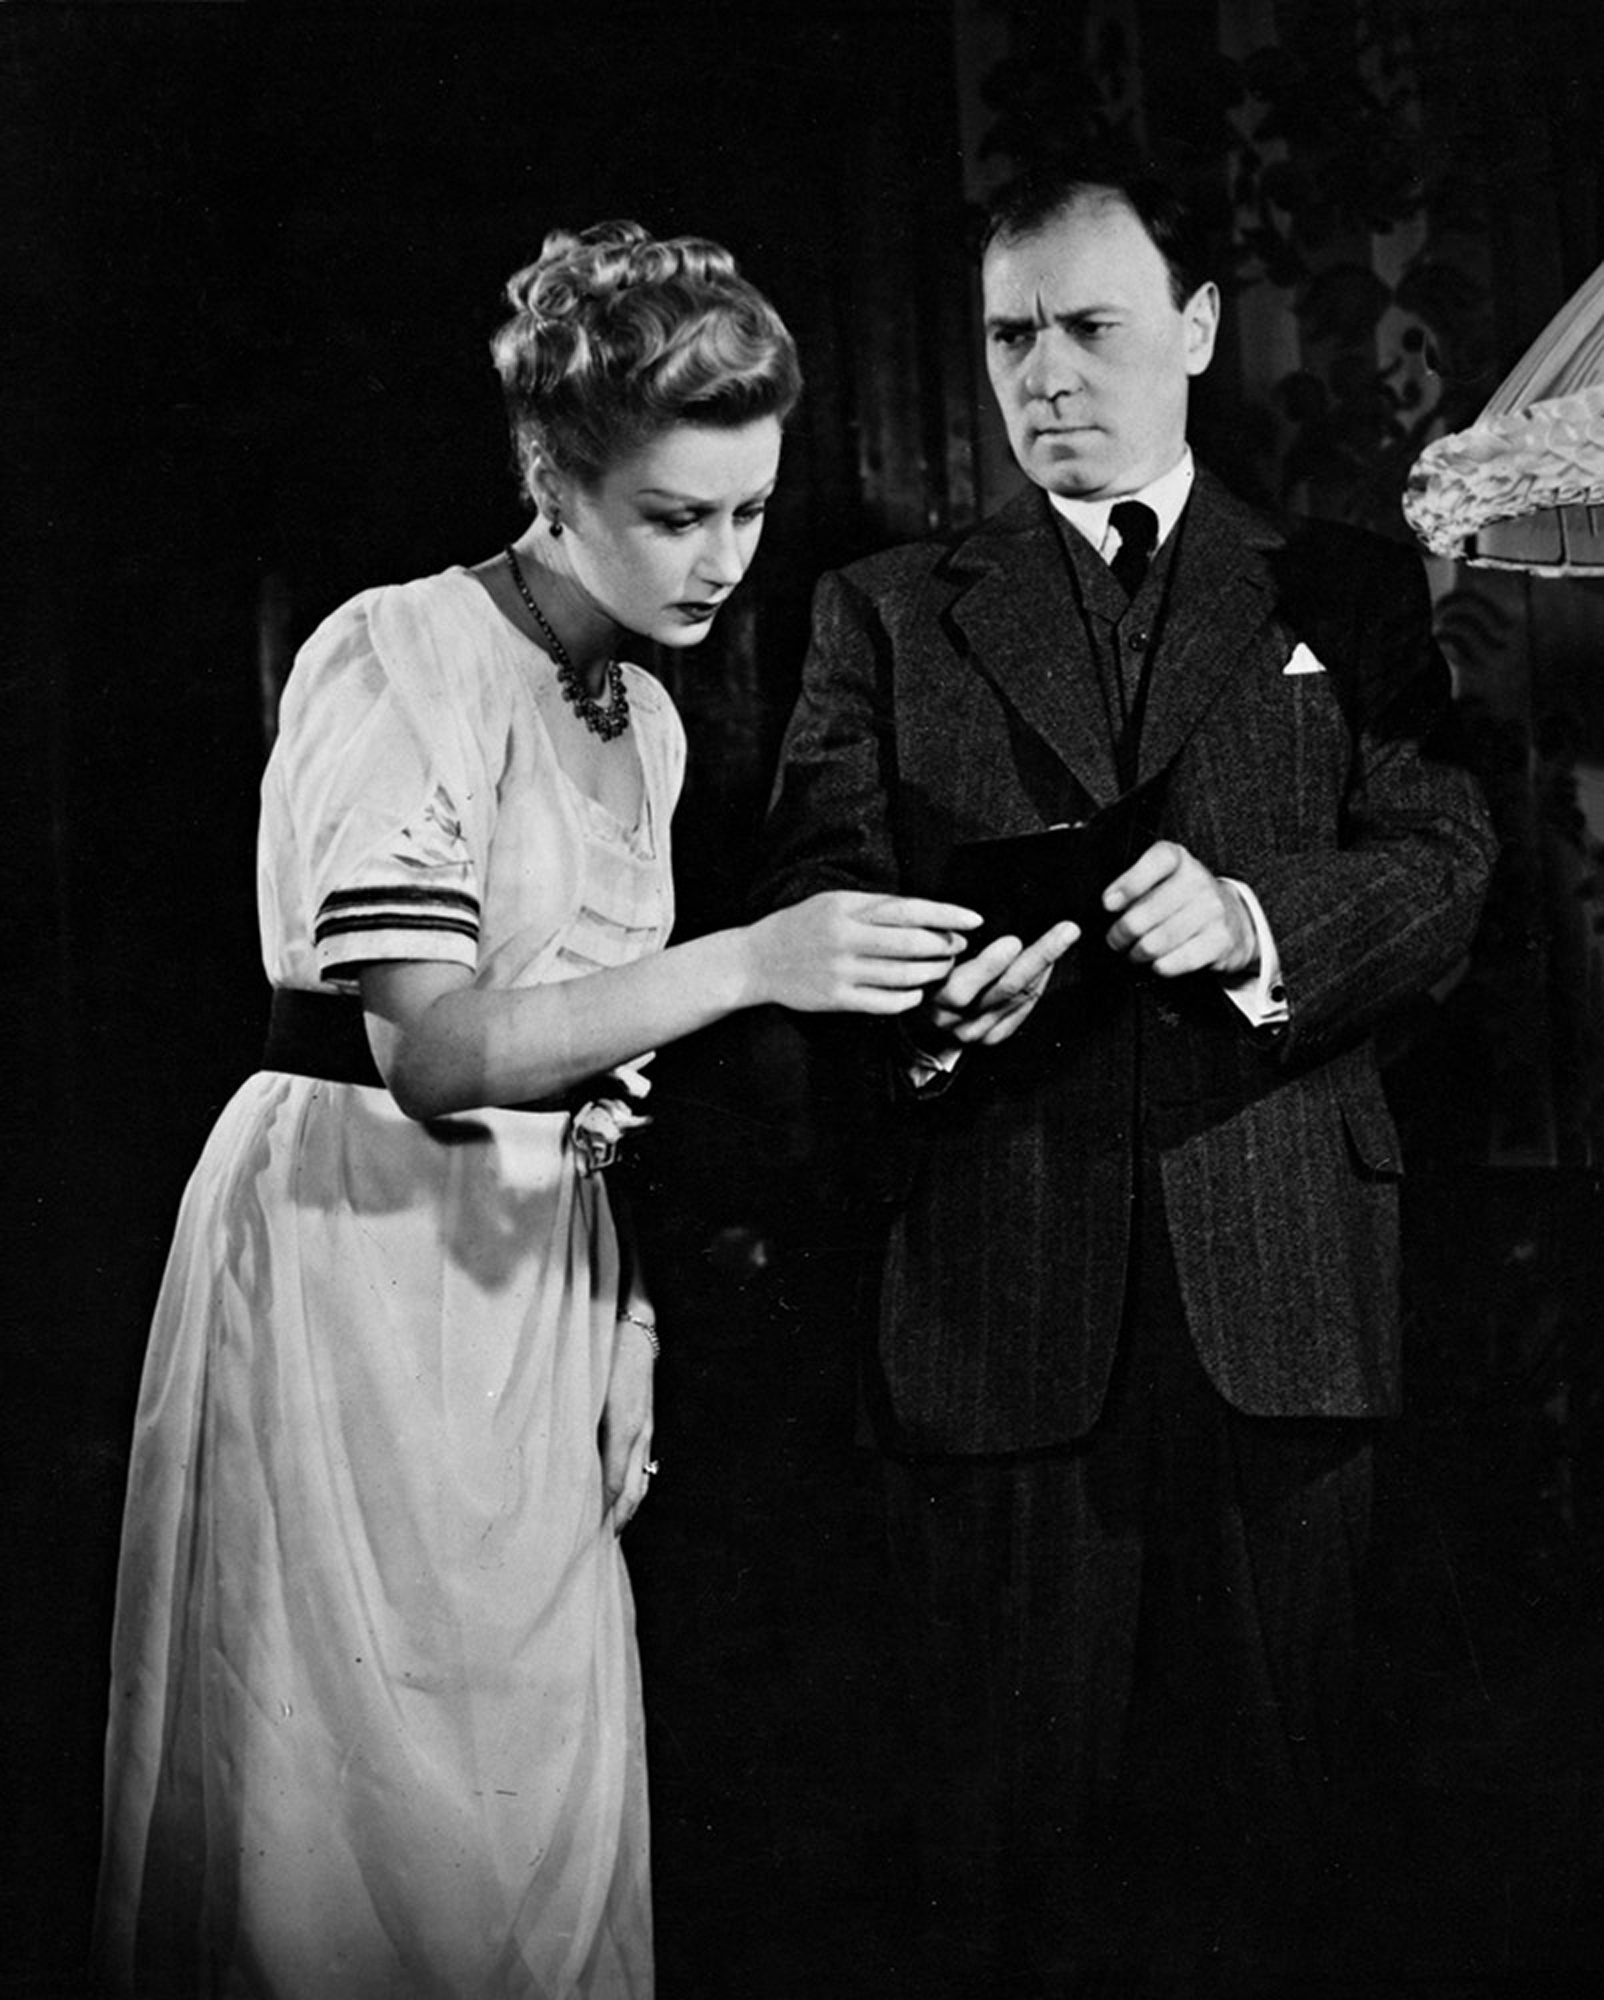 Photographs of An Inspector Calls by J B Priestley (1946 London premiere)